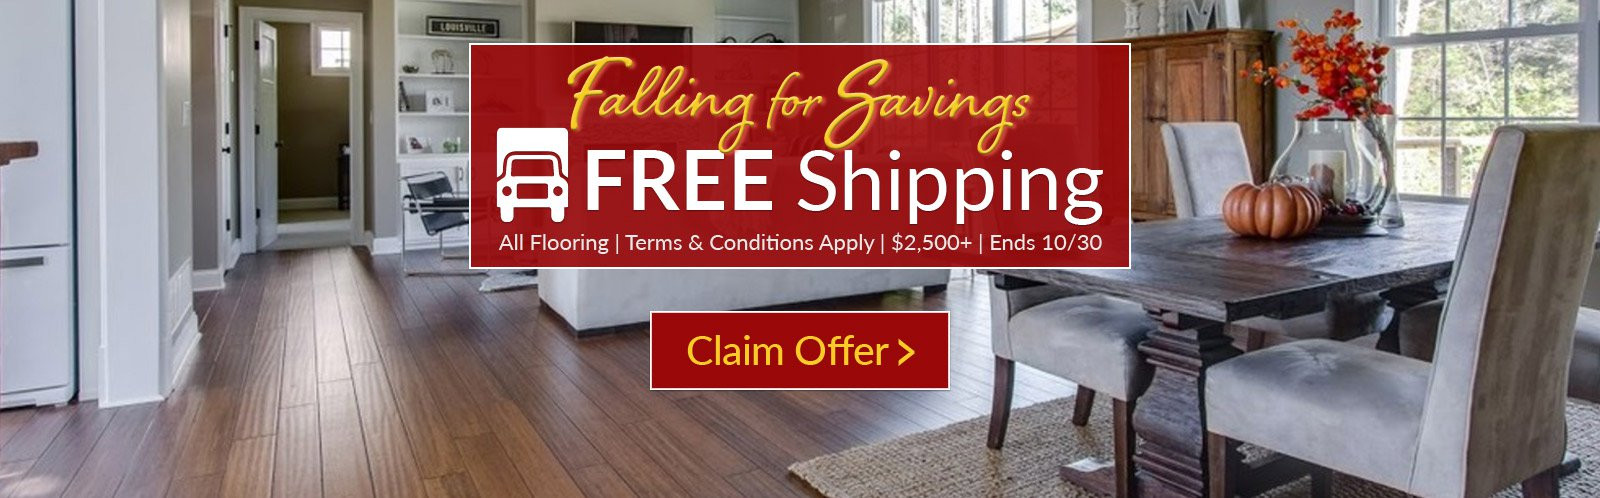 14 Famous Hardwood Flooring Ontario 2021 free download hardwood flooring ontario of green building construction materials and home decor cali bamboo throughout your shopping cart is empty